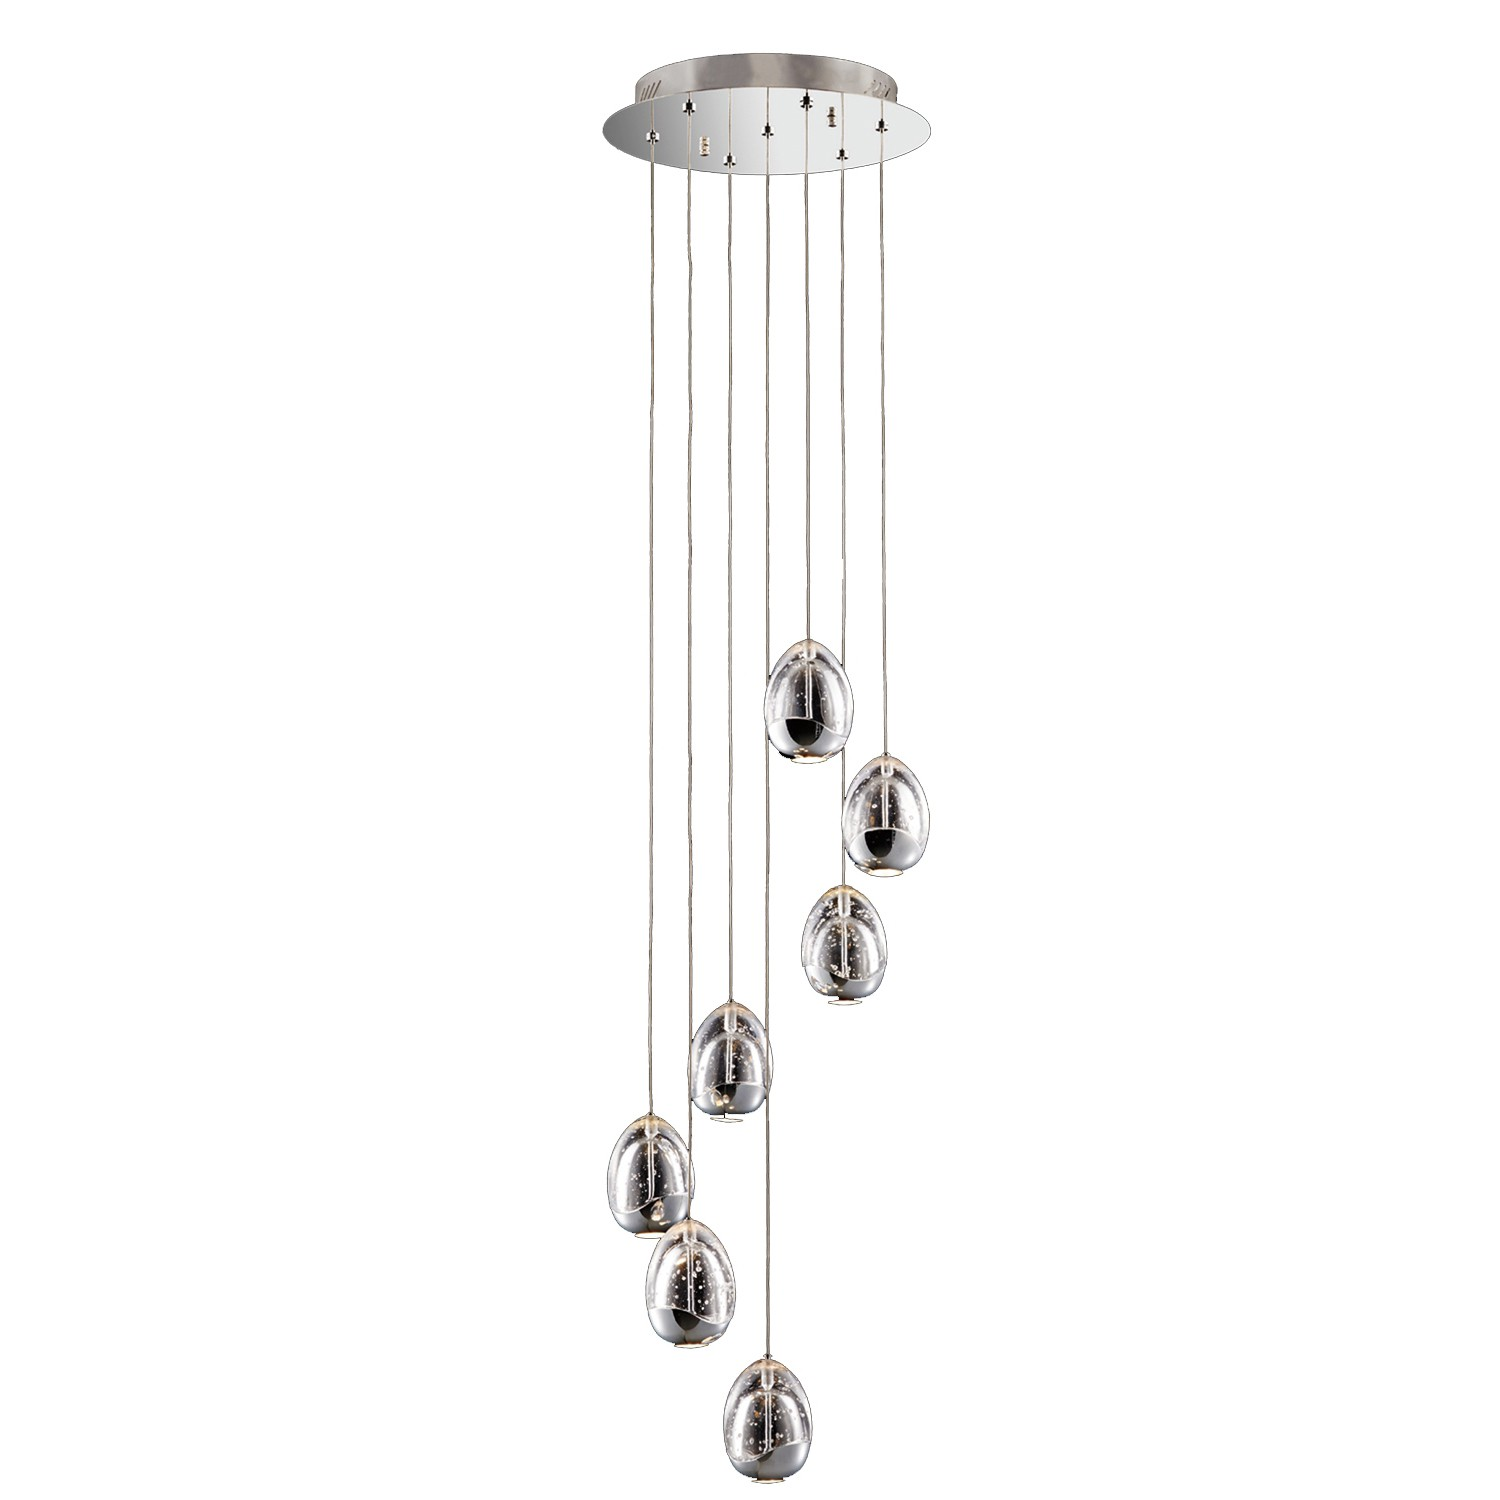 Eden 7 light spiral pendant chrome leekes zoom aloadofball Choice Image